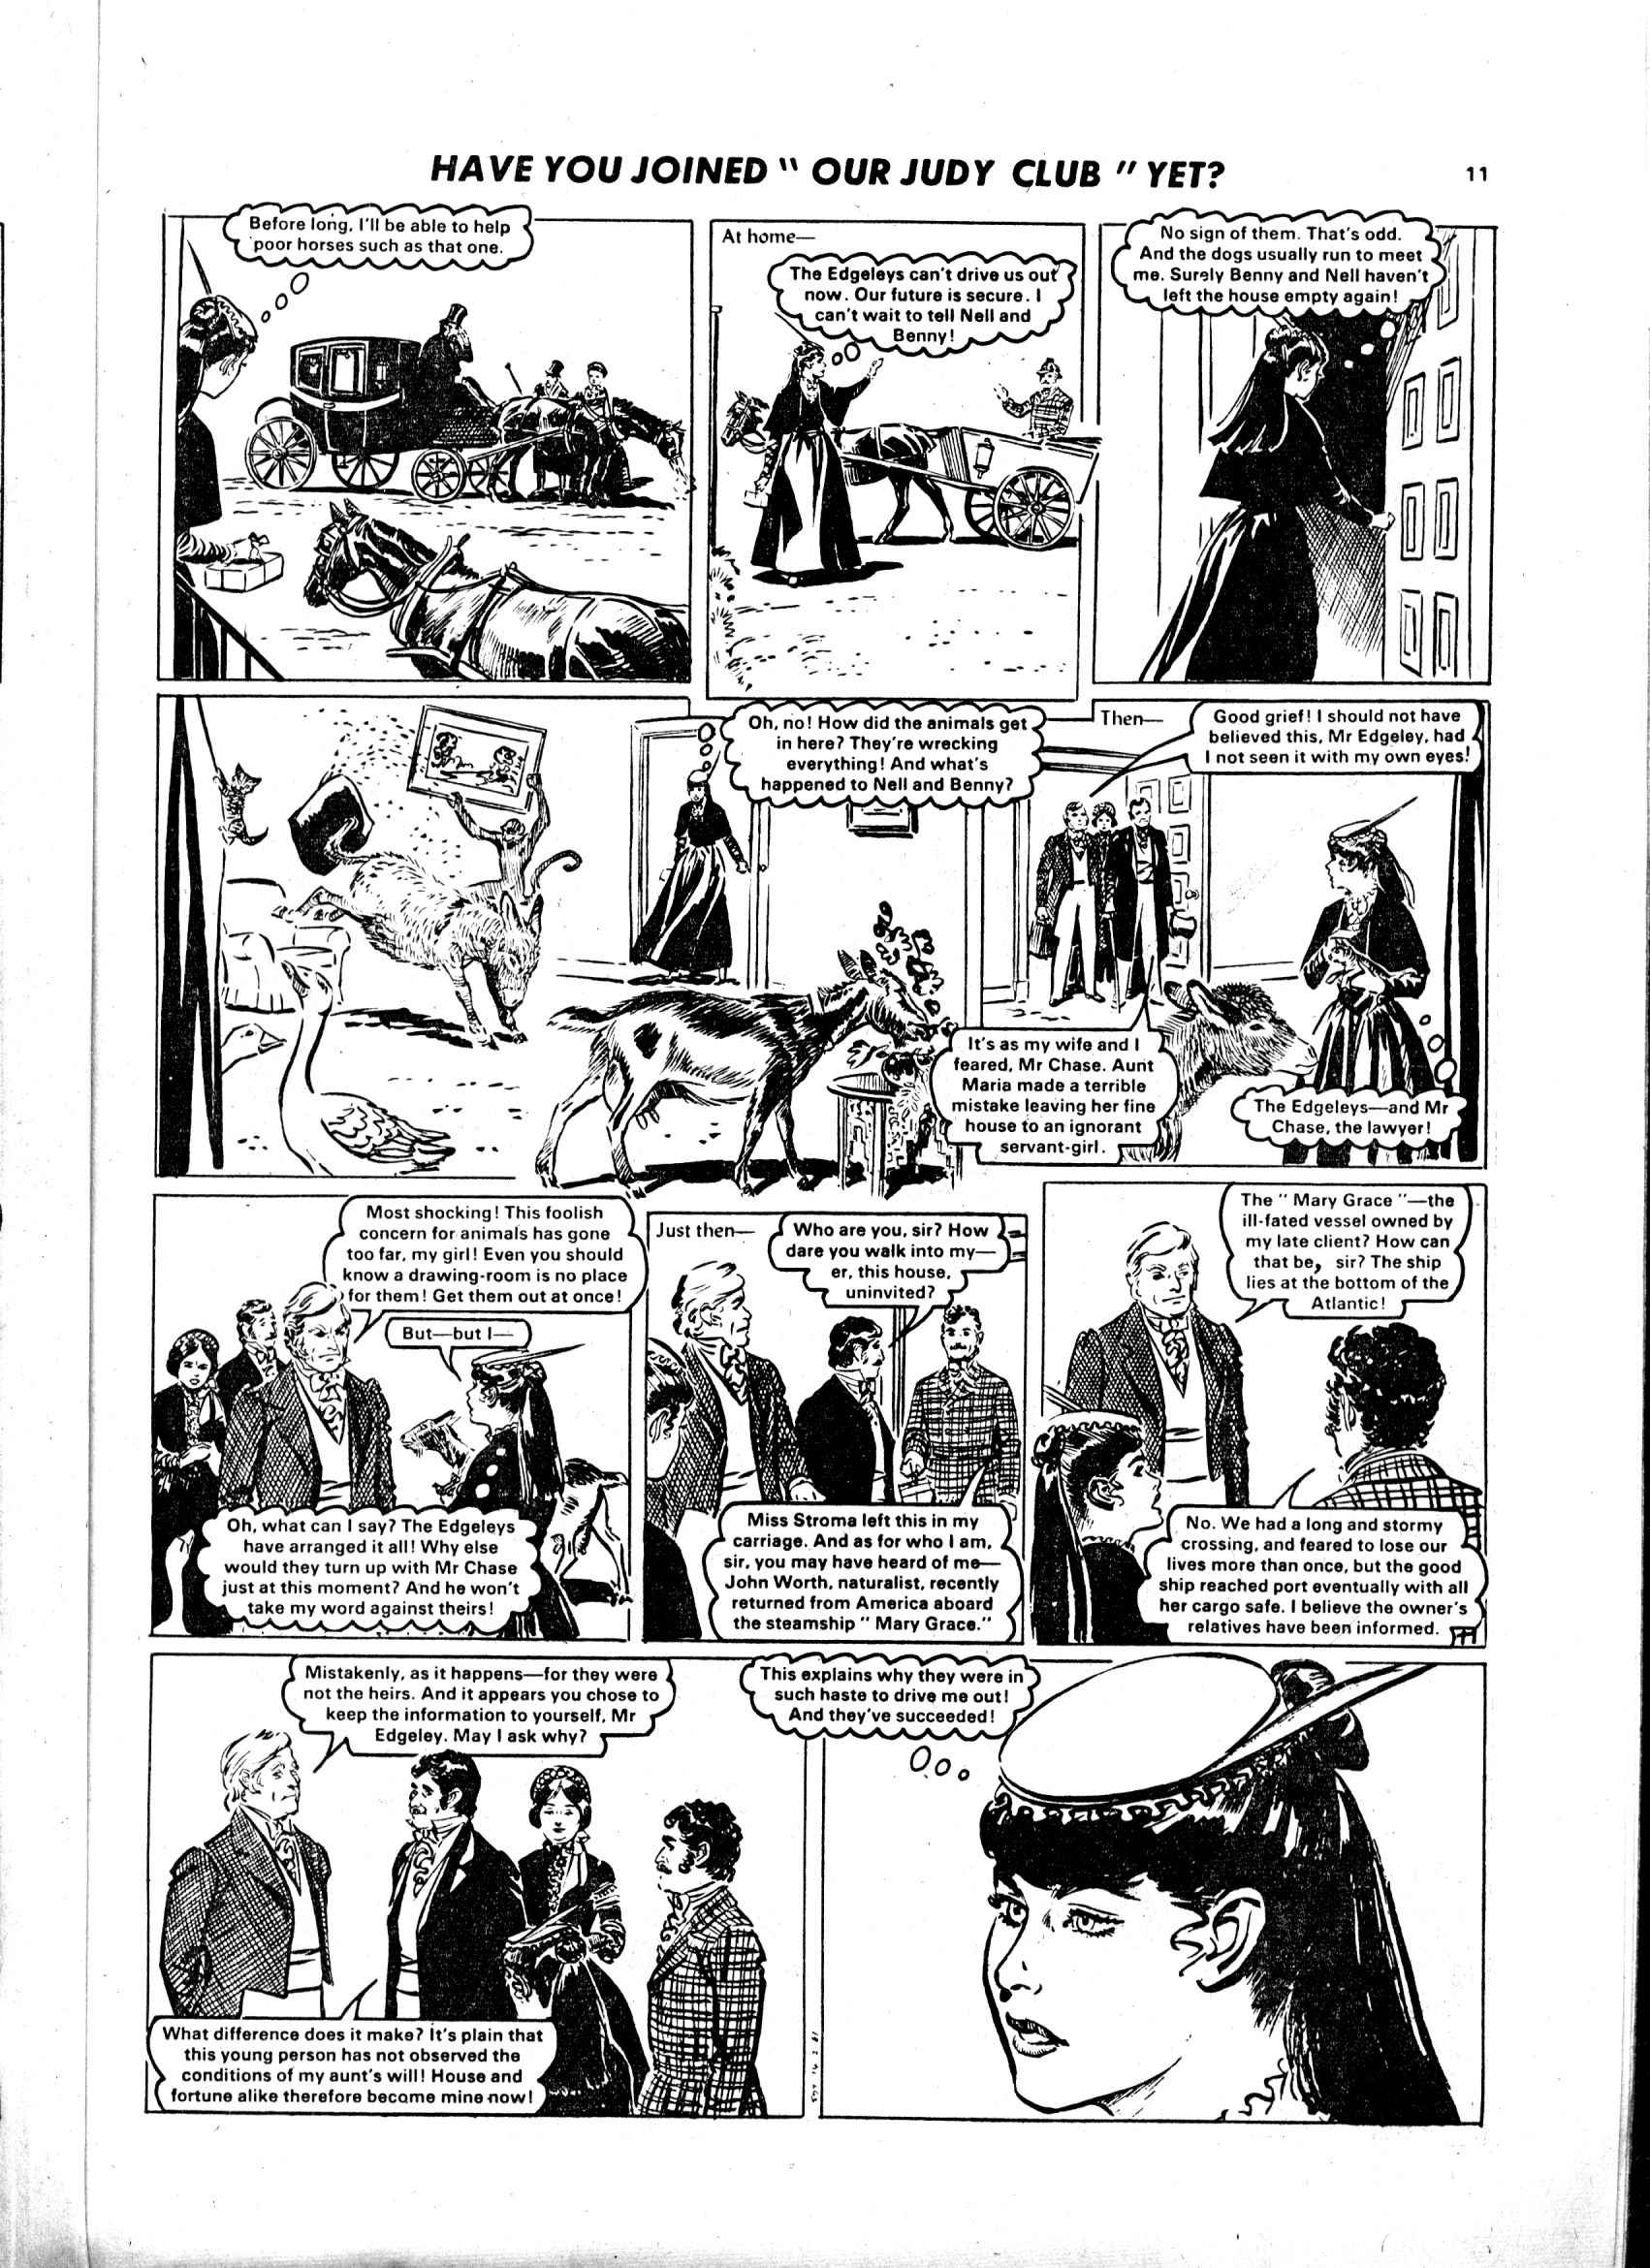 Read online Judy comic -  Issue #1101 - 11